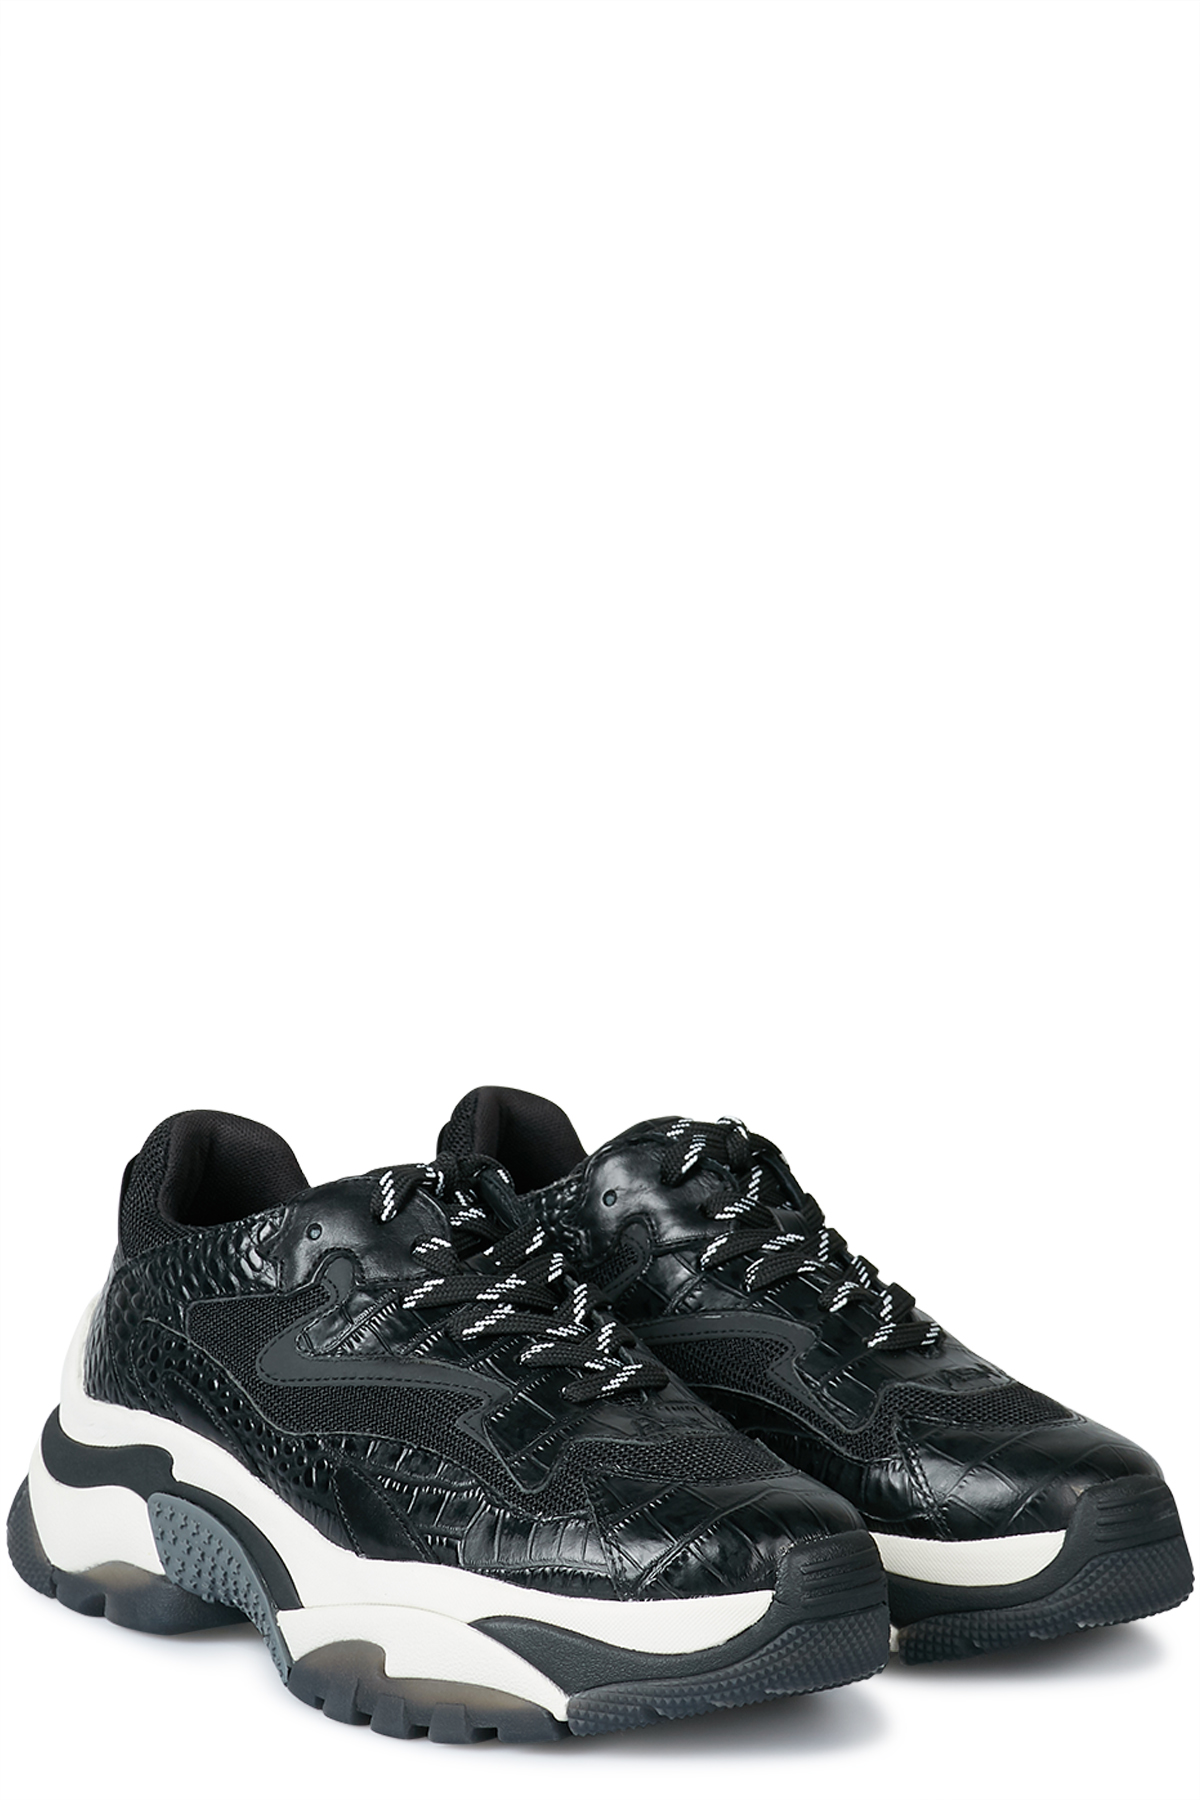 Sneakers Addict Black LeatherBlack Mesh